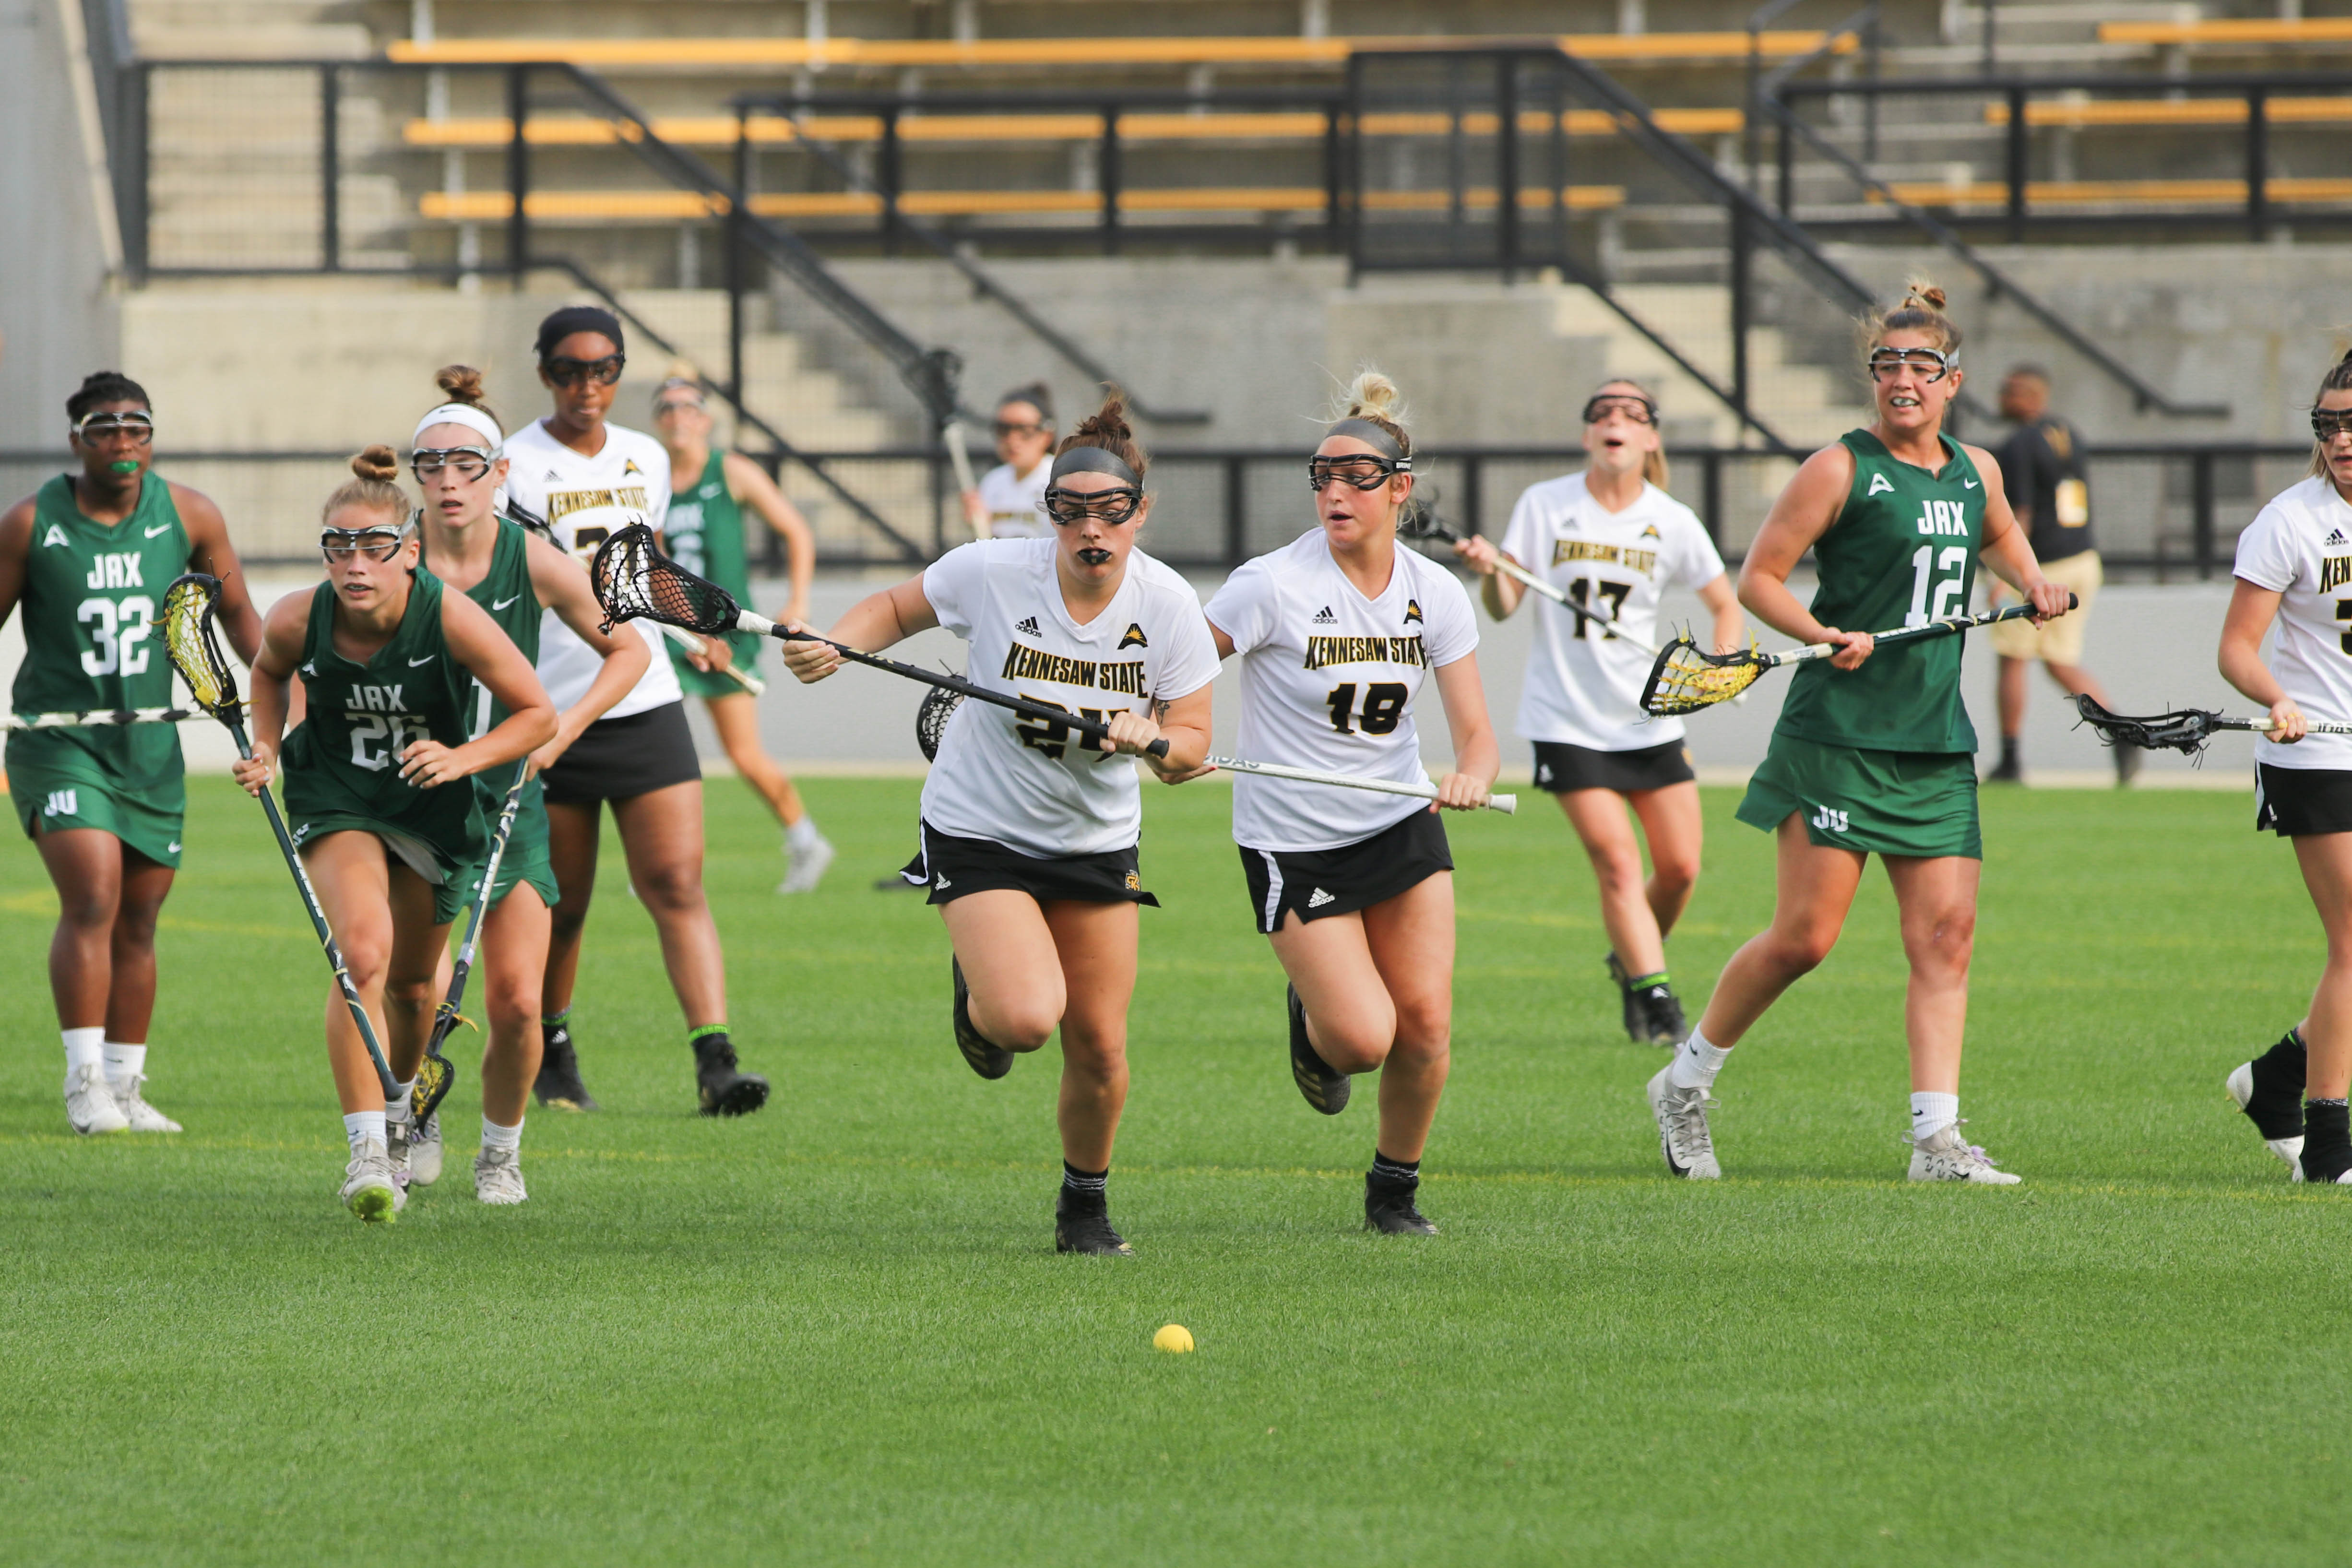 Squires scores five as LAX tops Hatters on Senior Day